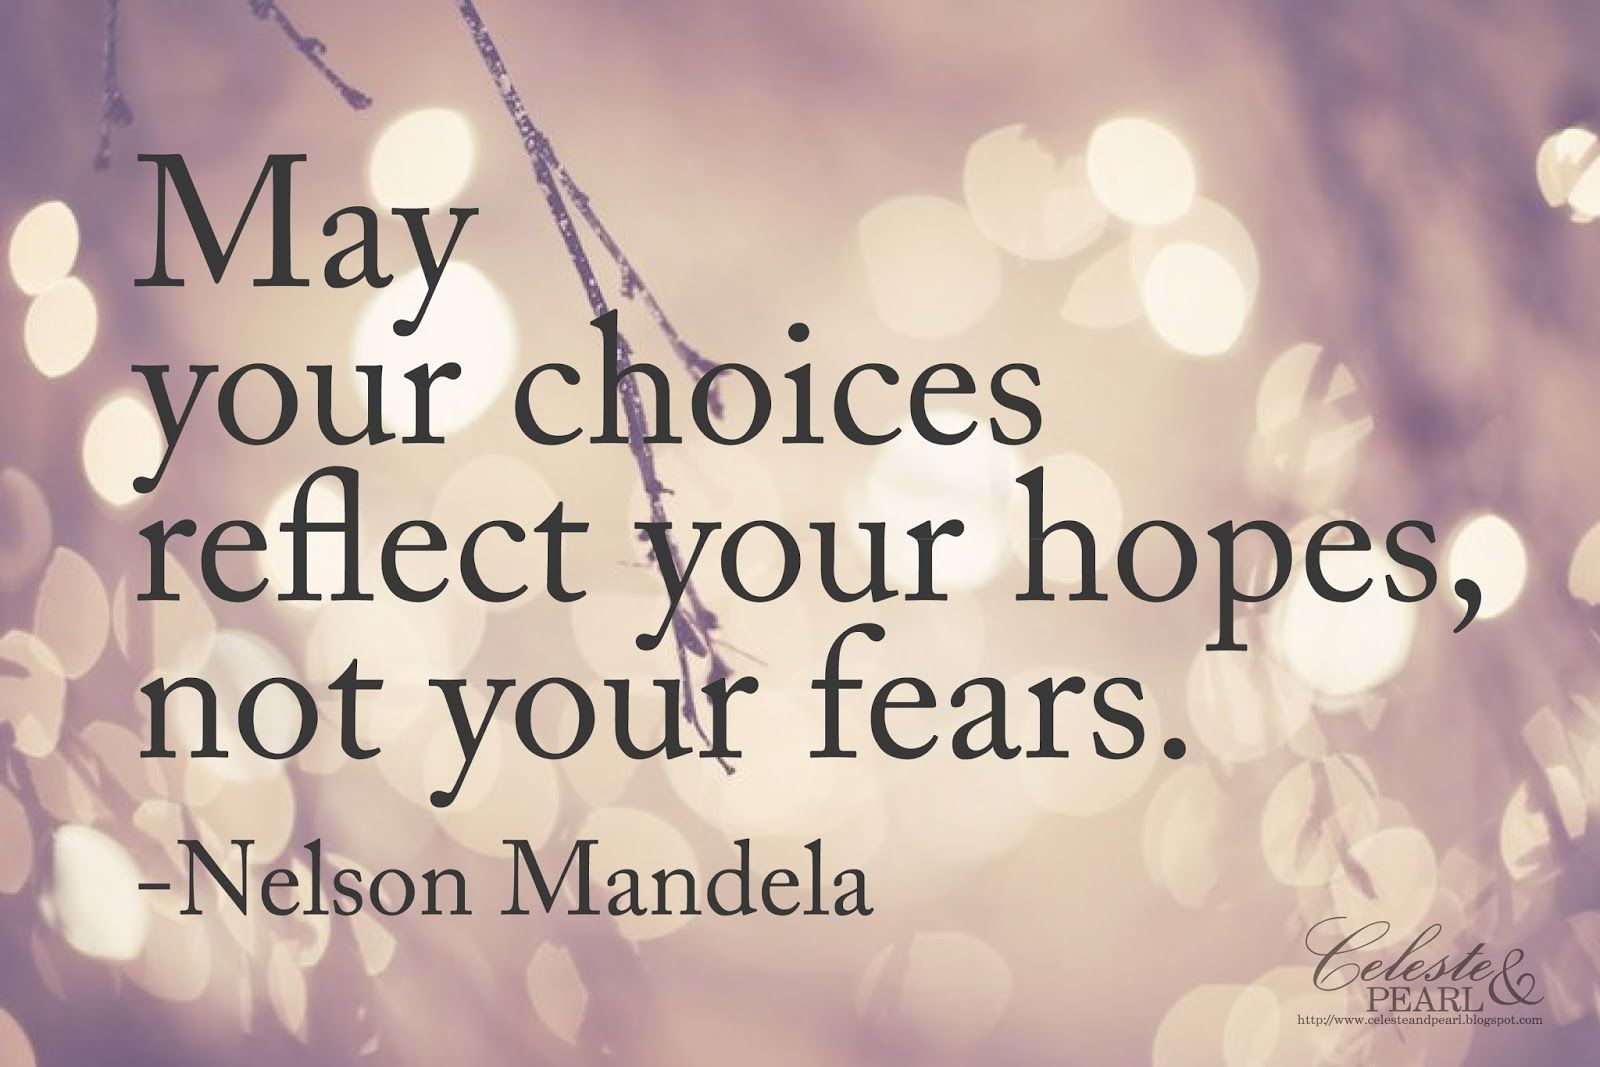 228879-May-Your-Choices-Reflect-Your-Hopes.jpg